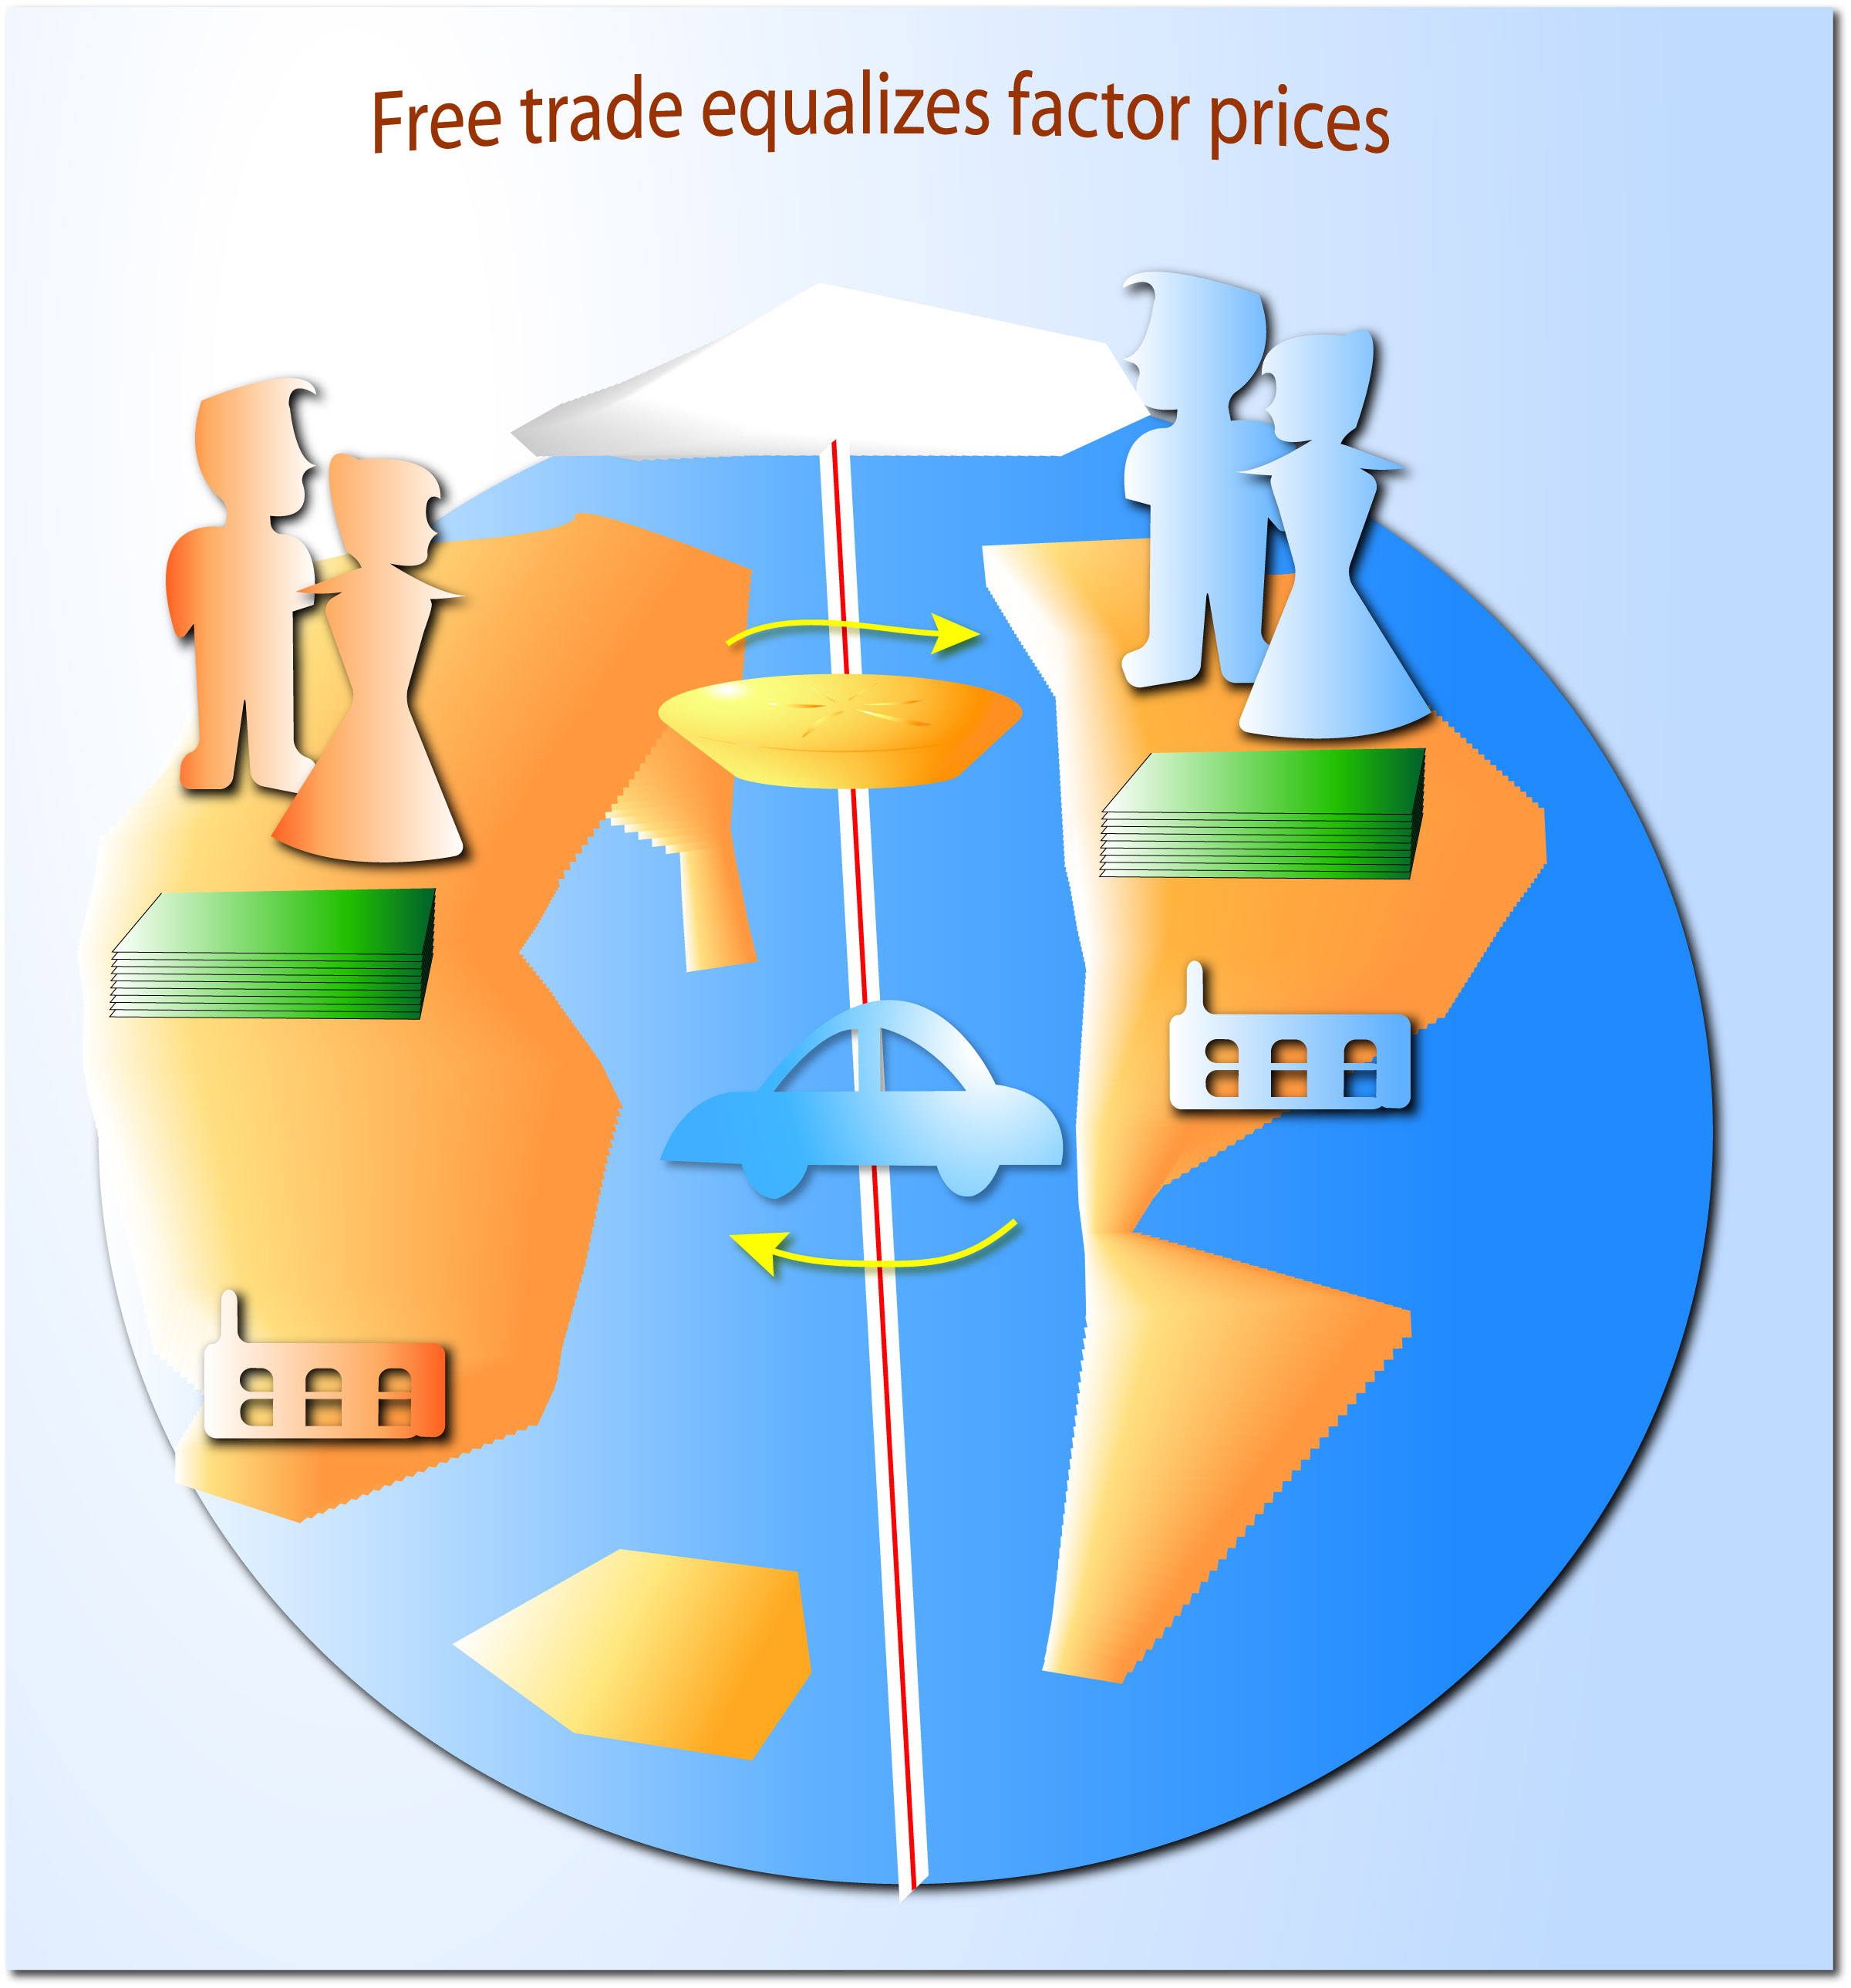 price equalization theory The factor price equalization theory is a theory that explains the effects of trade and globalization on the price of goods the theory is often applied to workers' wages.